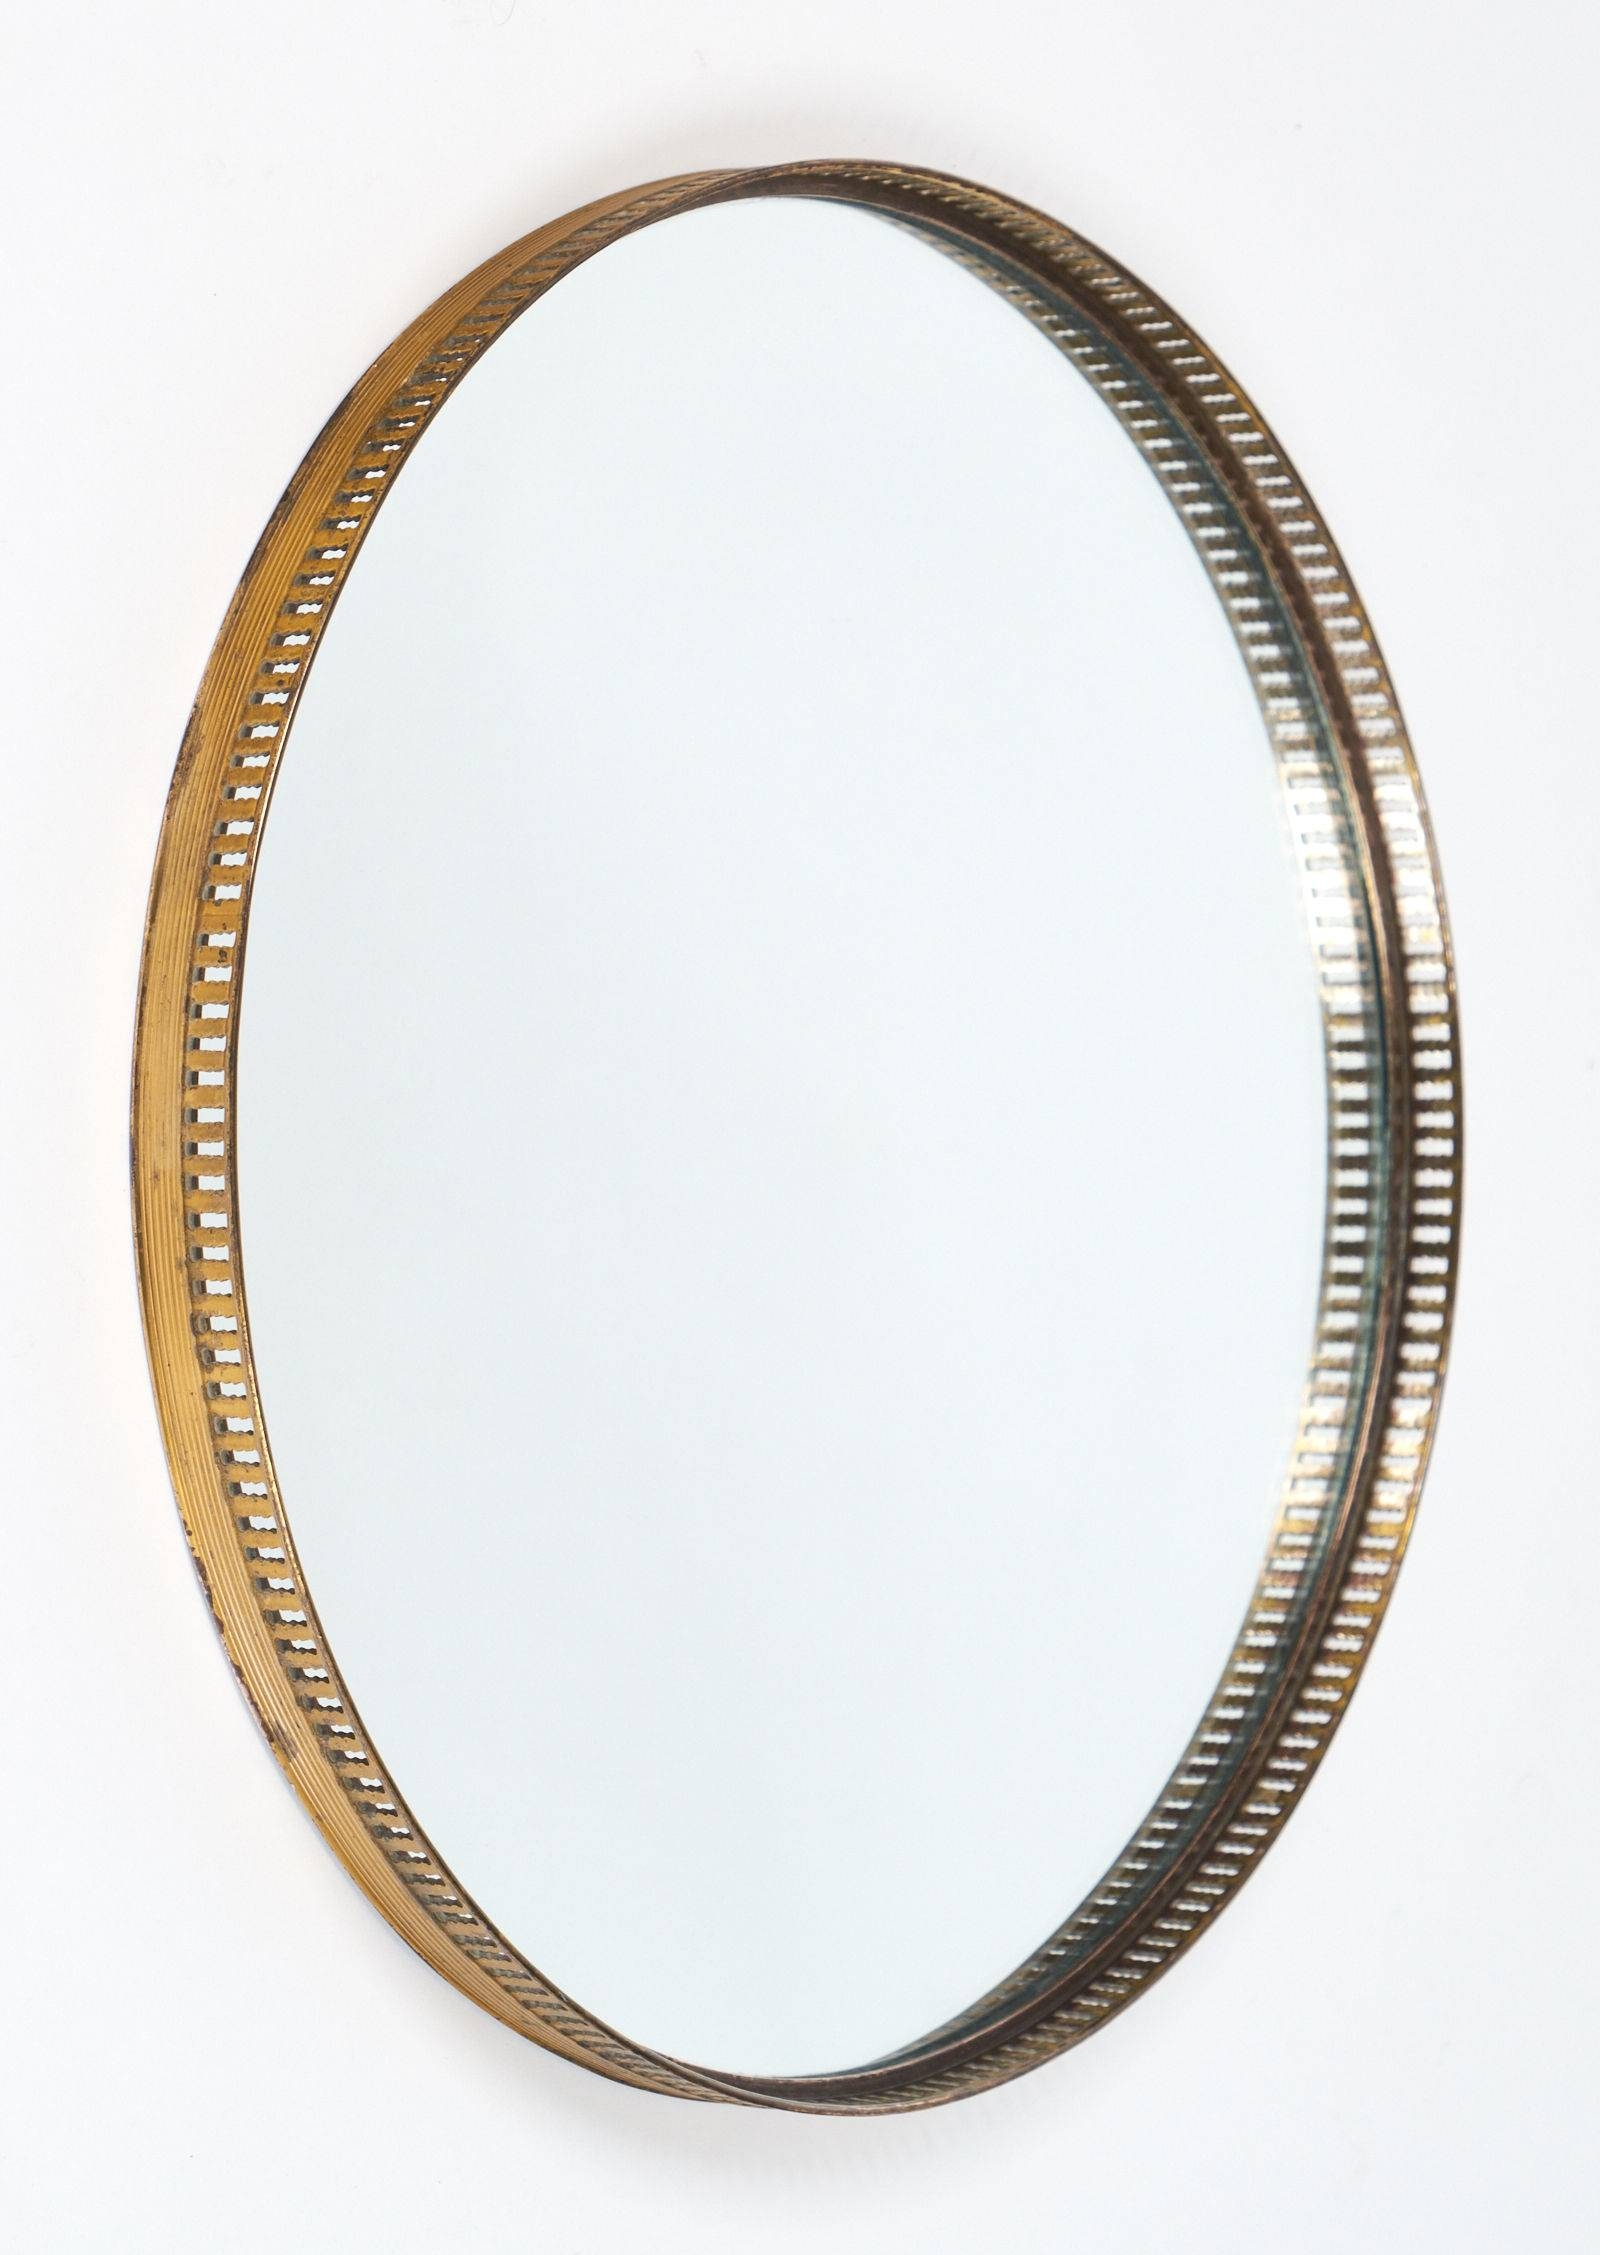 Antique Brass Gallery Round Wall Mirrors - Jean Marc Fray within Antique Round Mirrors (Image 4 of 25)